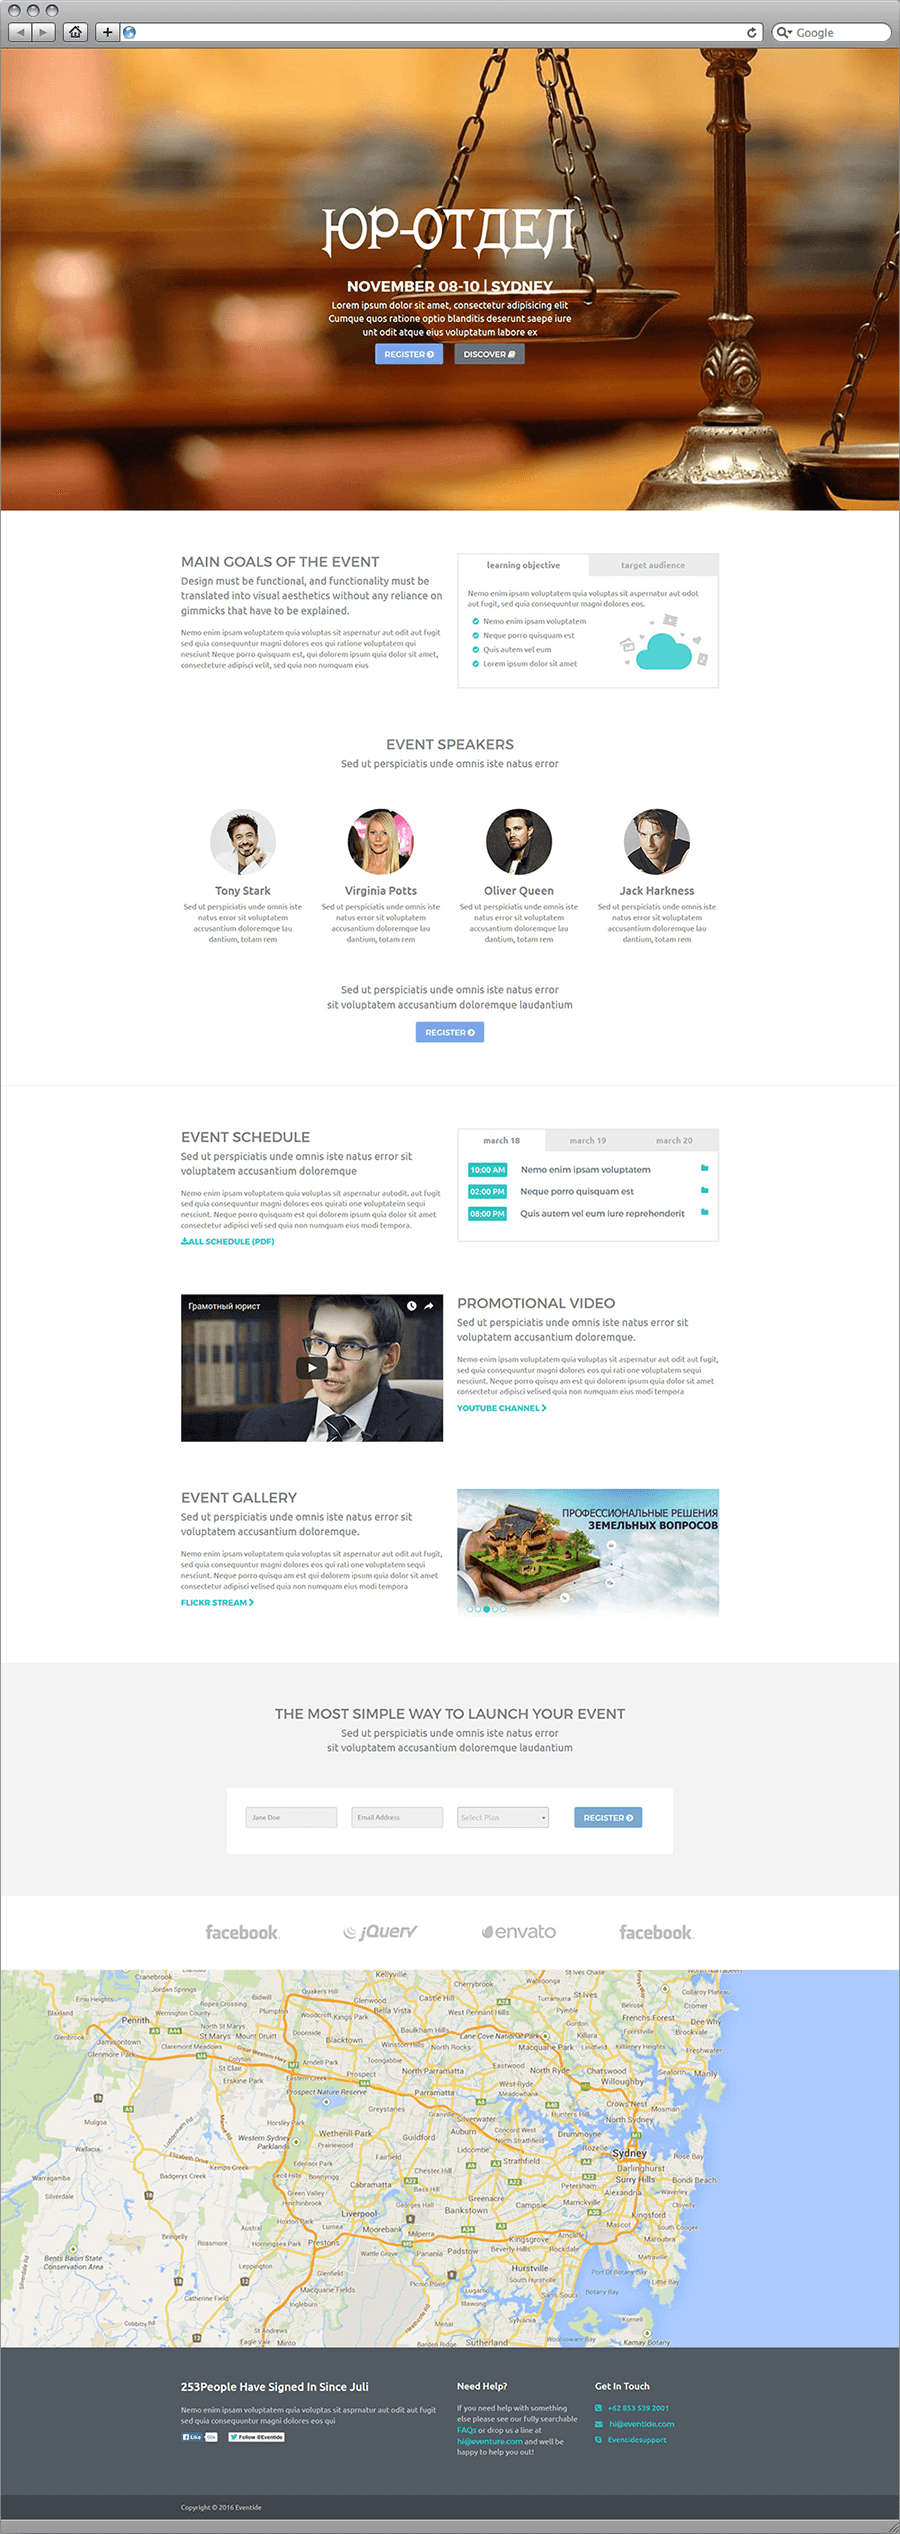 yurist 2 - Landing Page for a law firm